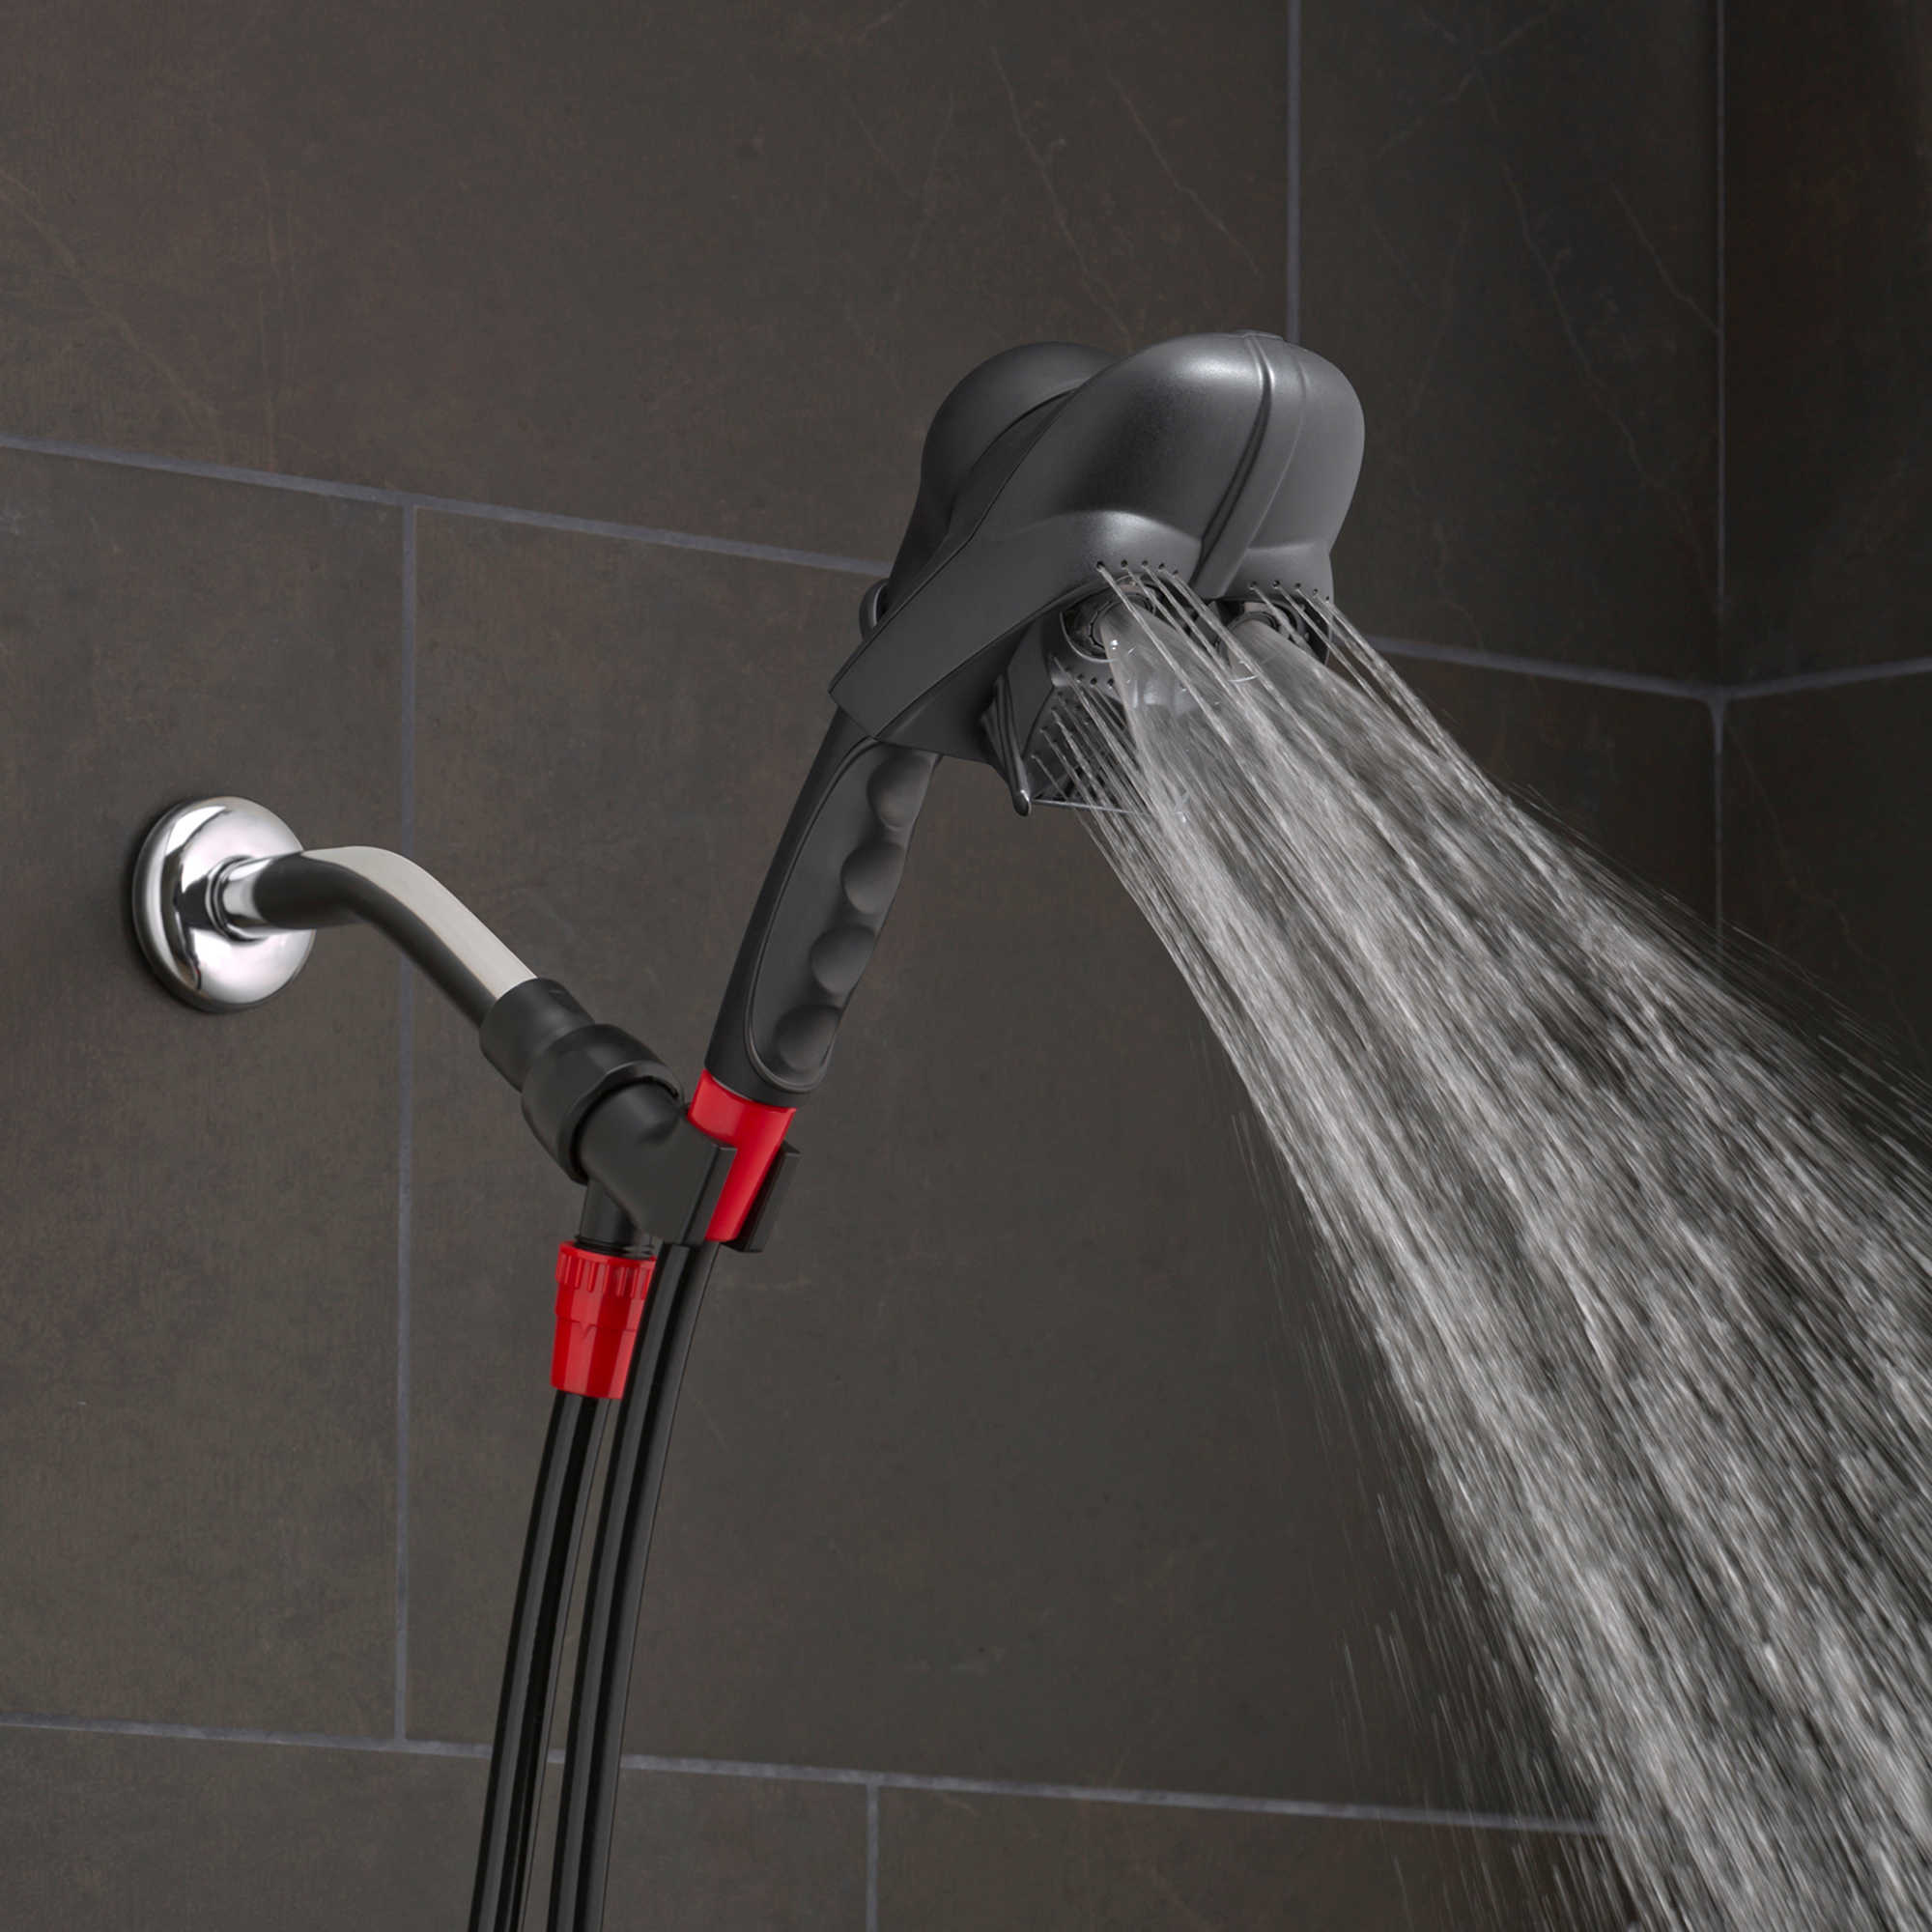 Bed, Bath and Beyond is officially selling the coolest shower heads we've ever seen